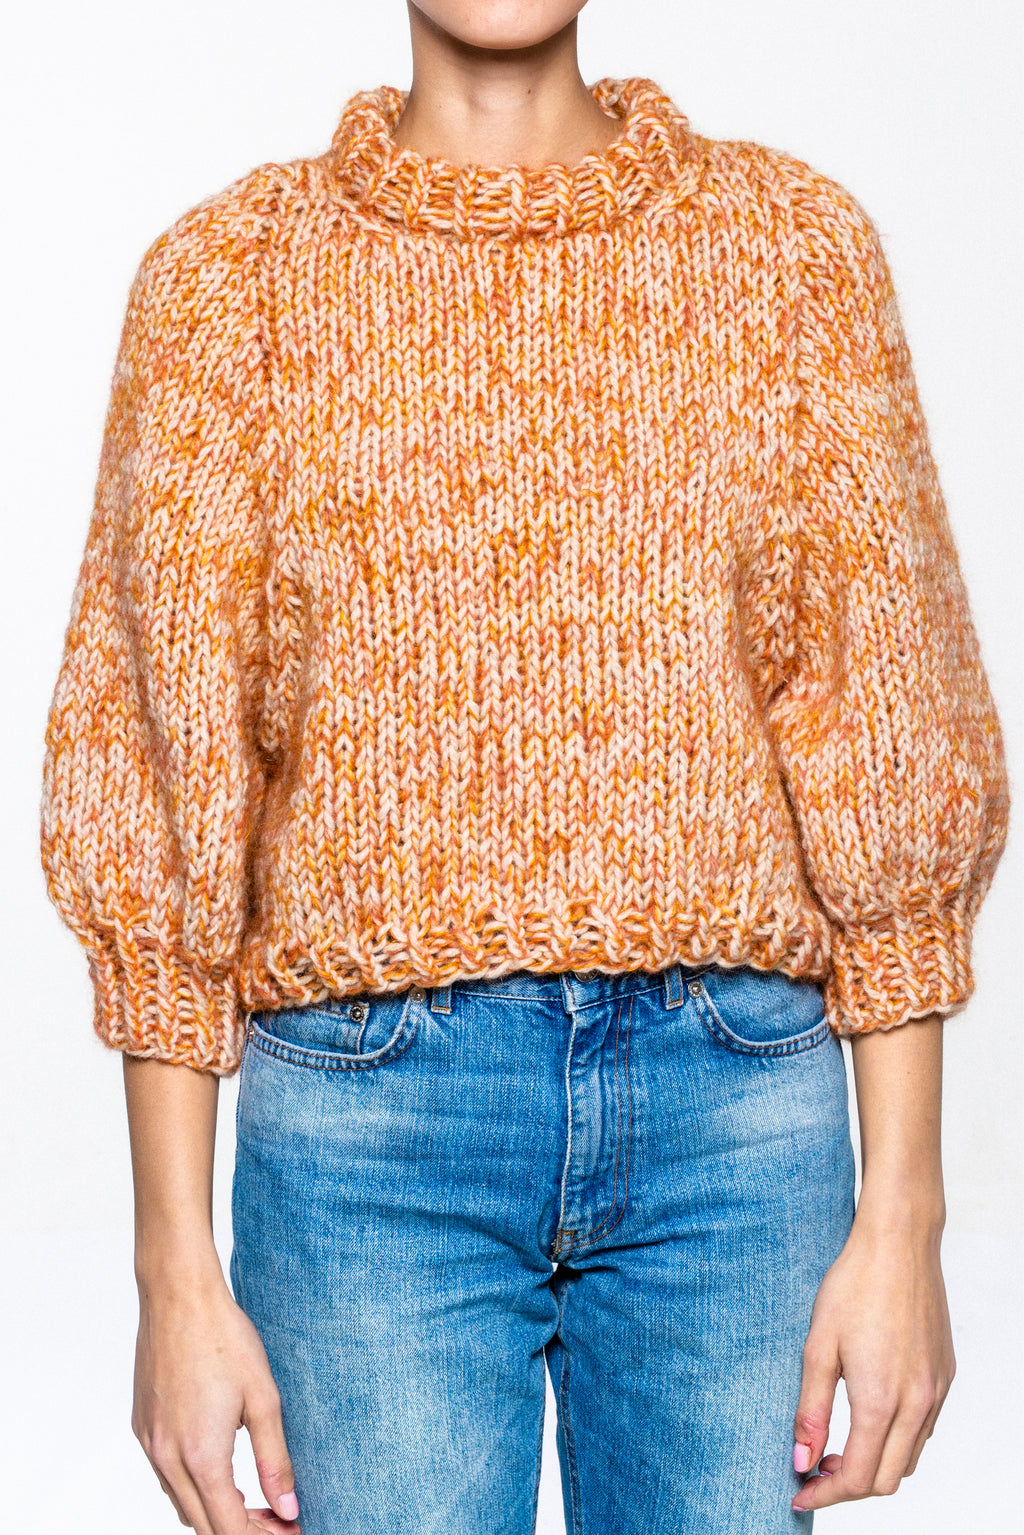 Camille Sweater Orange - Sample